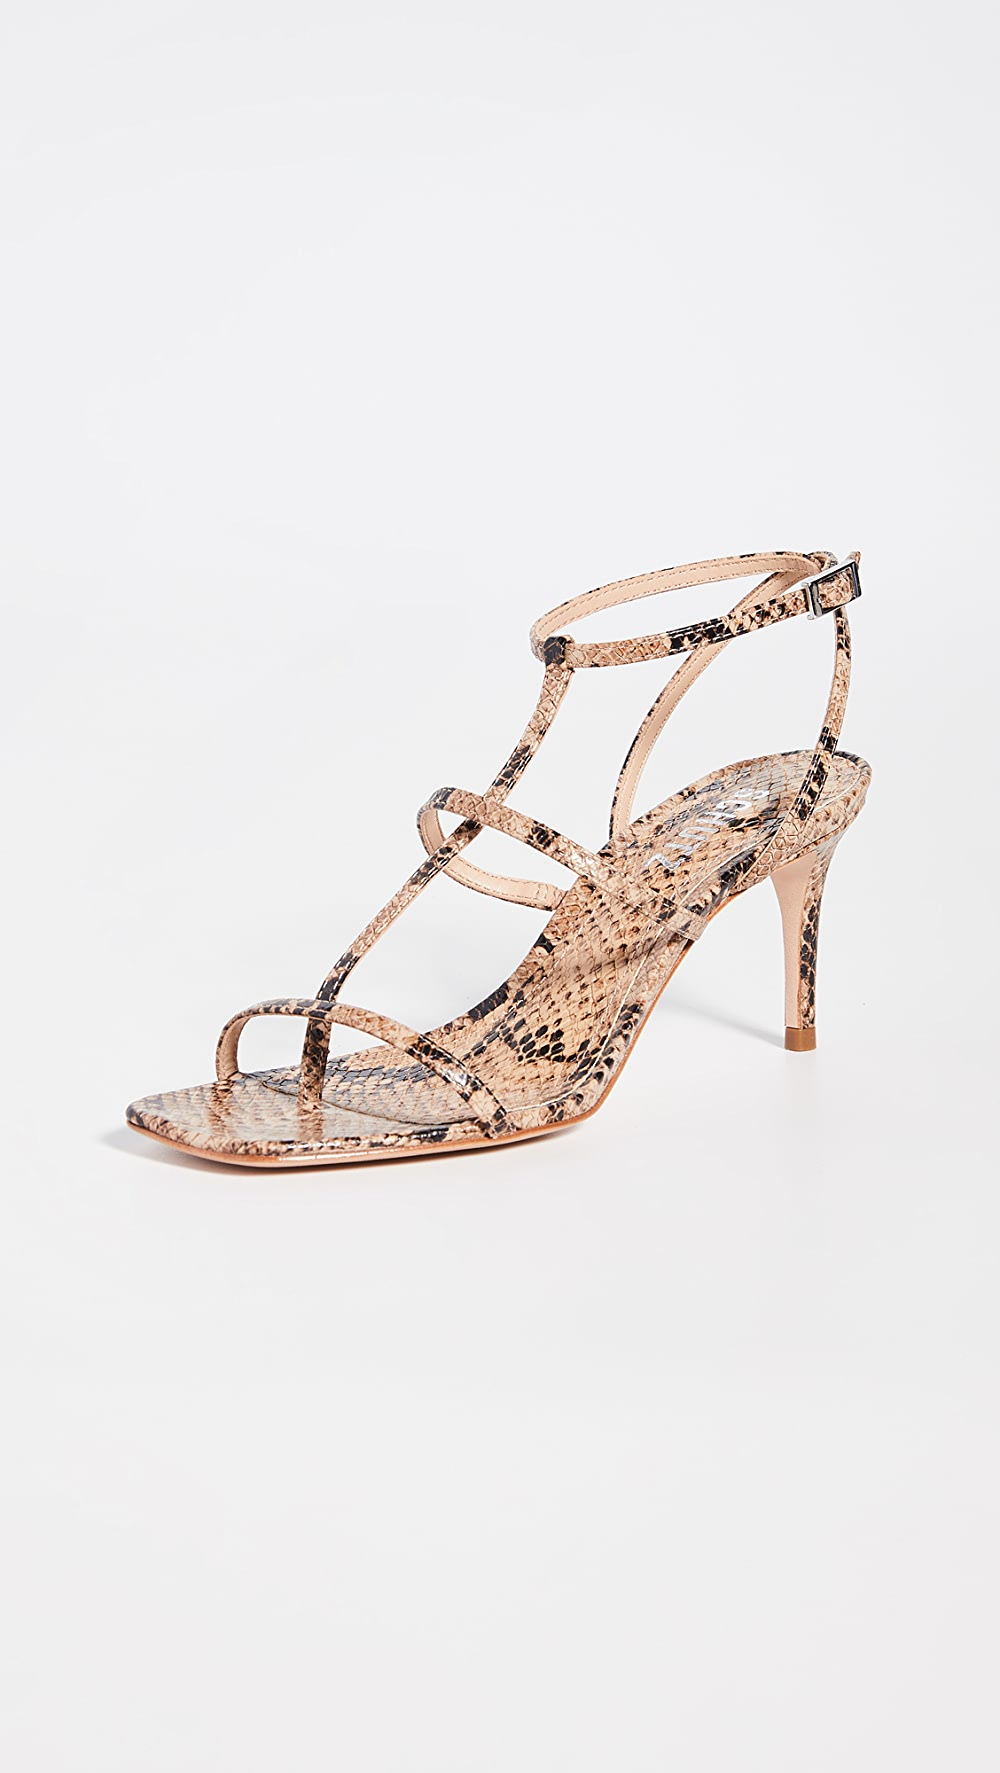 Friendly Schutz - Ameena Sandals Moderate Cost